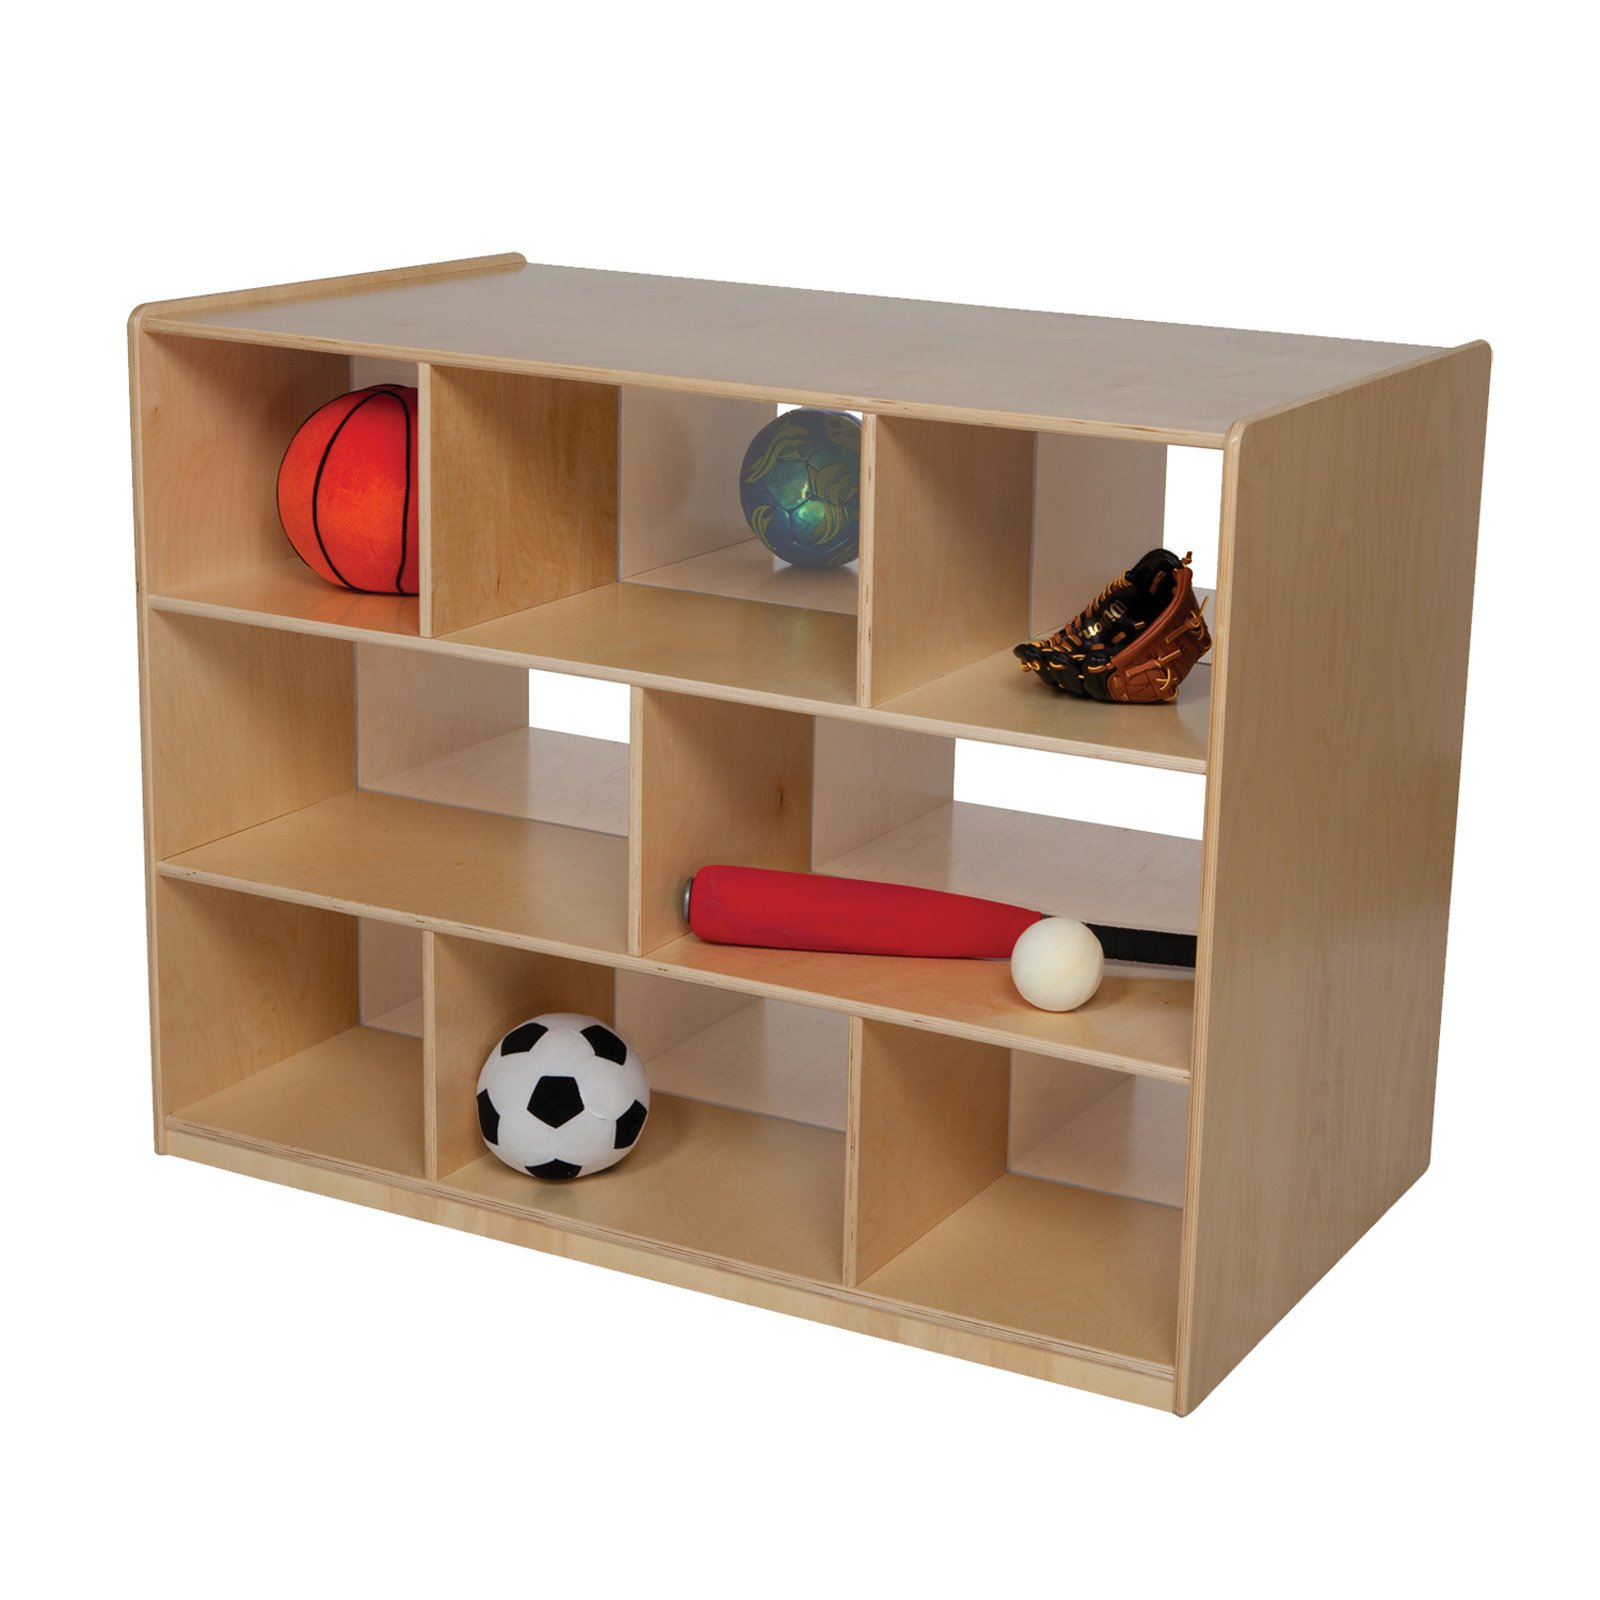 Wood Designs Double Storage Island with Acrylic - 36H in.